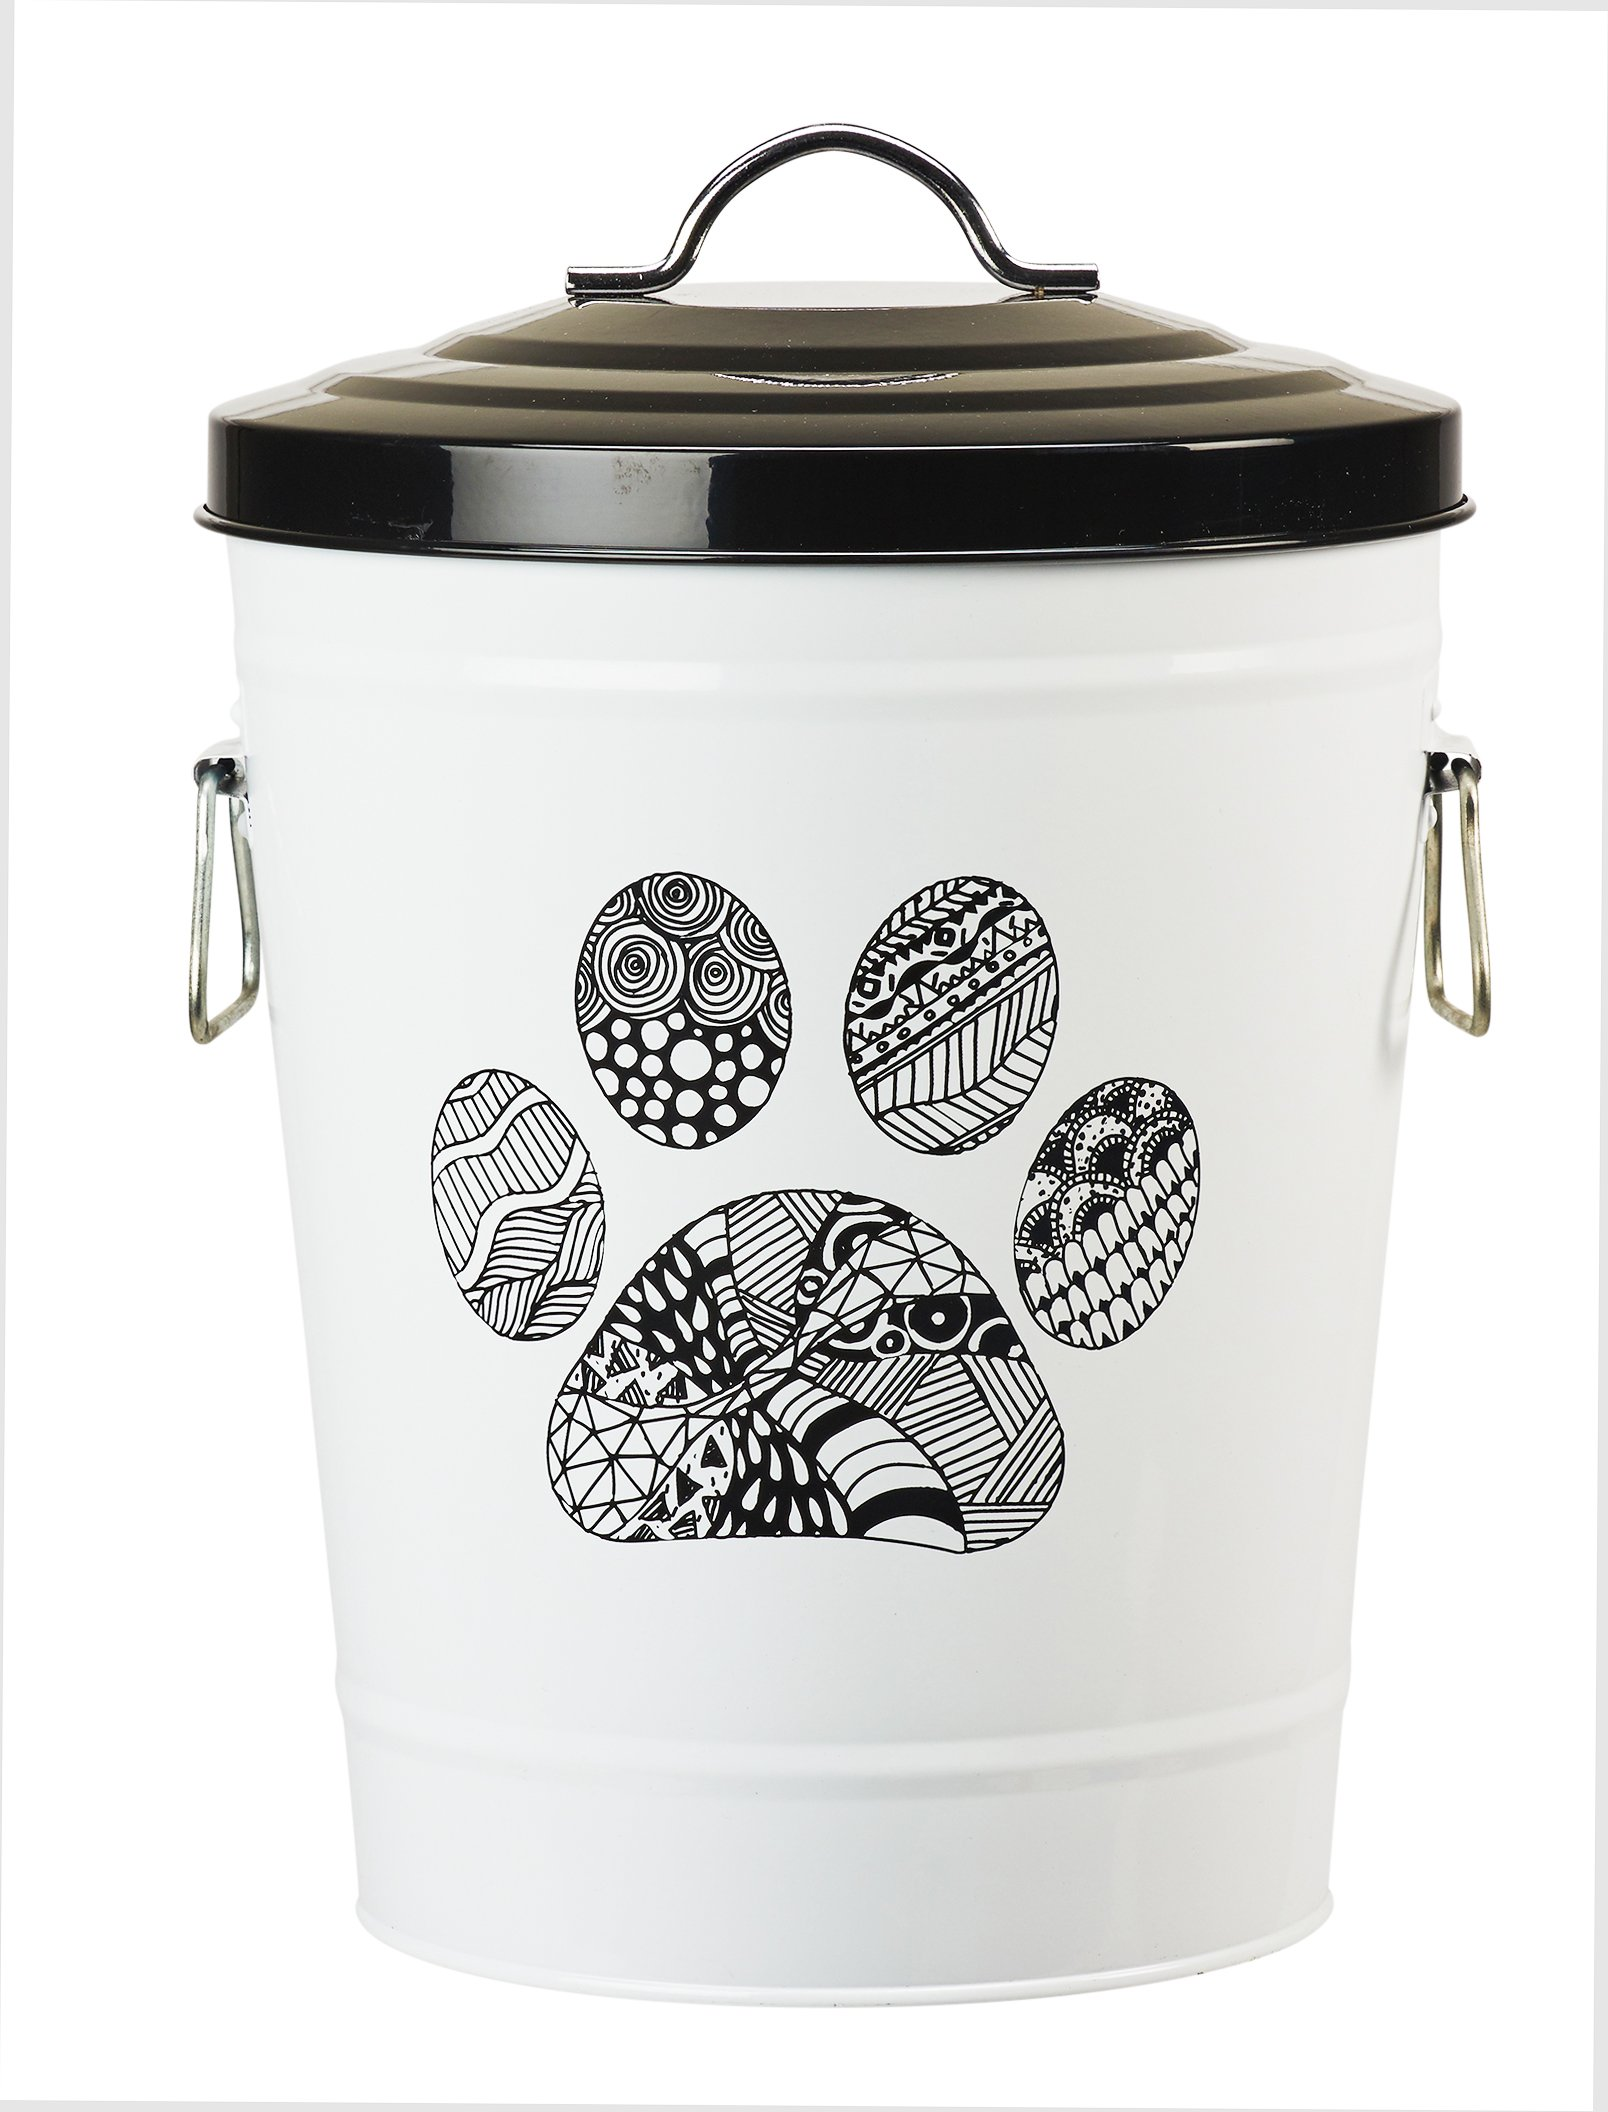 Amici Pet, A7YY022PR, Zentangle Collection Paw Metal Storage Bin, Food Safe, Push Top, 17 Pound Capacity by Amici Pet